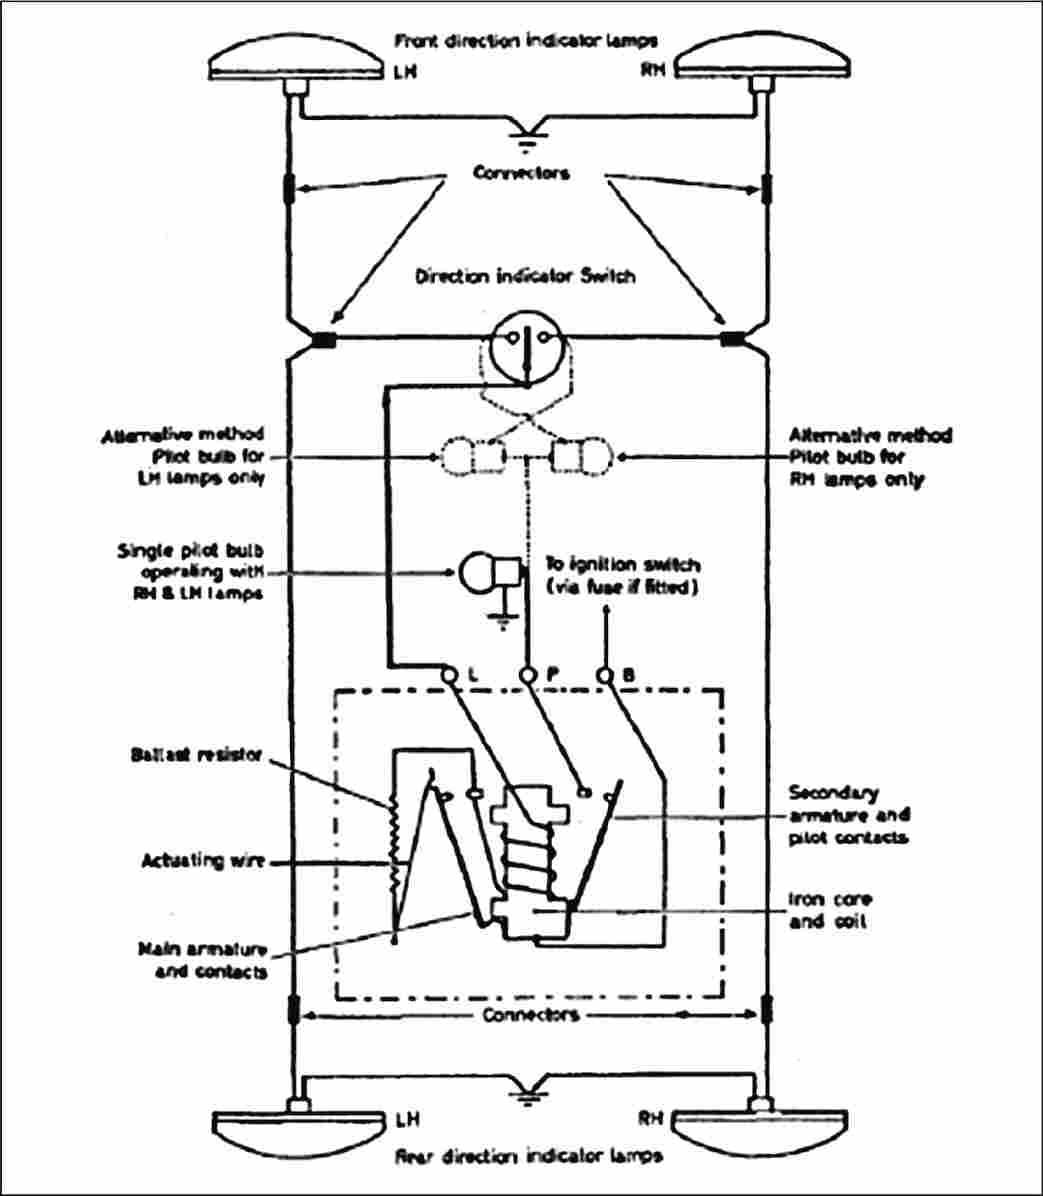 standard_flasher_diagram modern flasher circuits flasher unit wiring diagram at mifinder.co